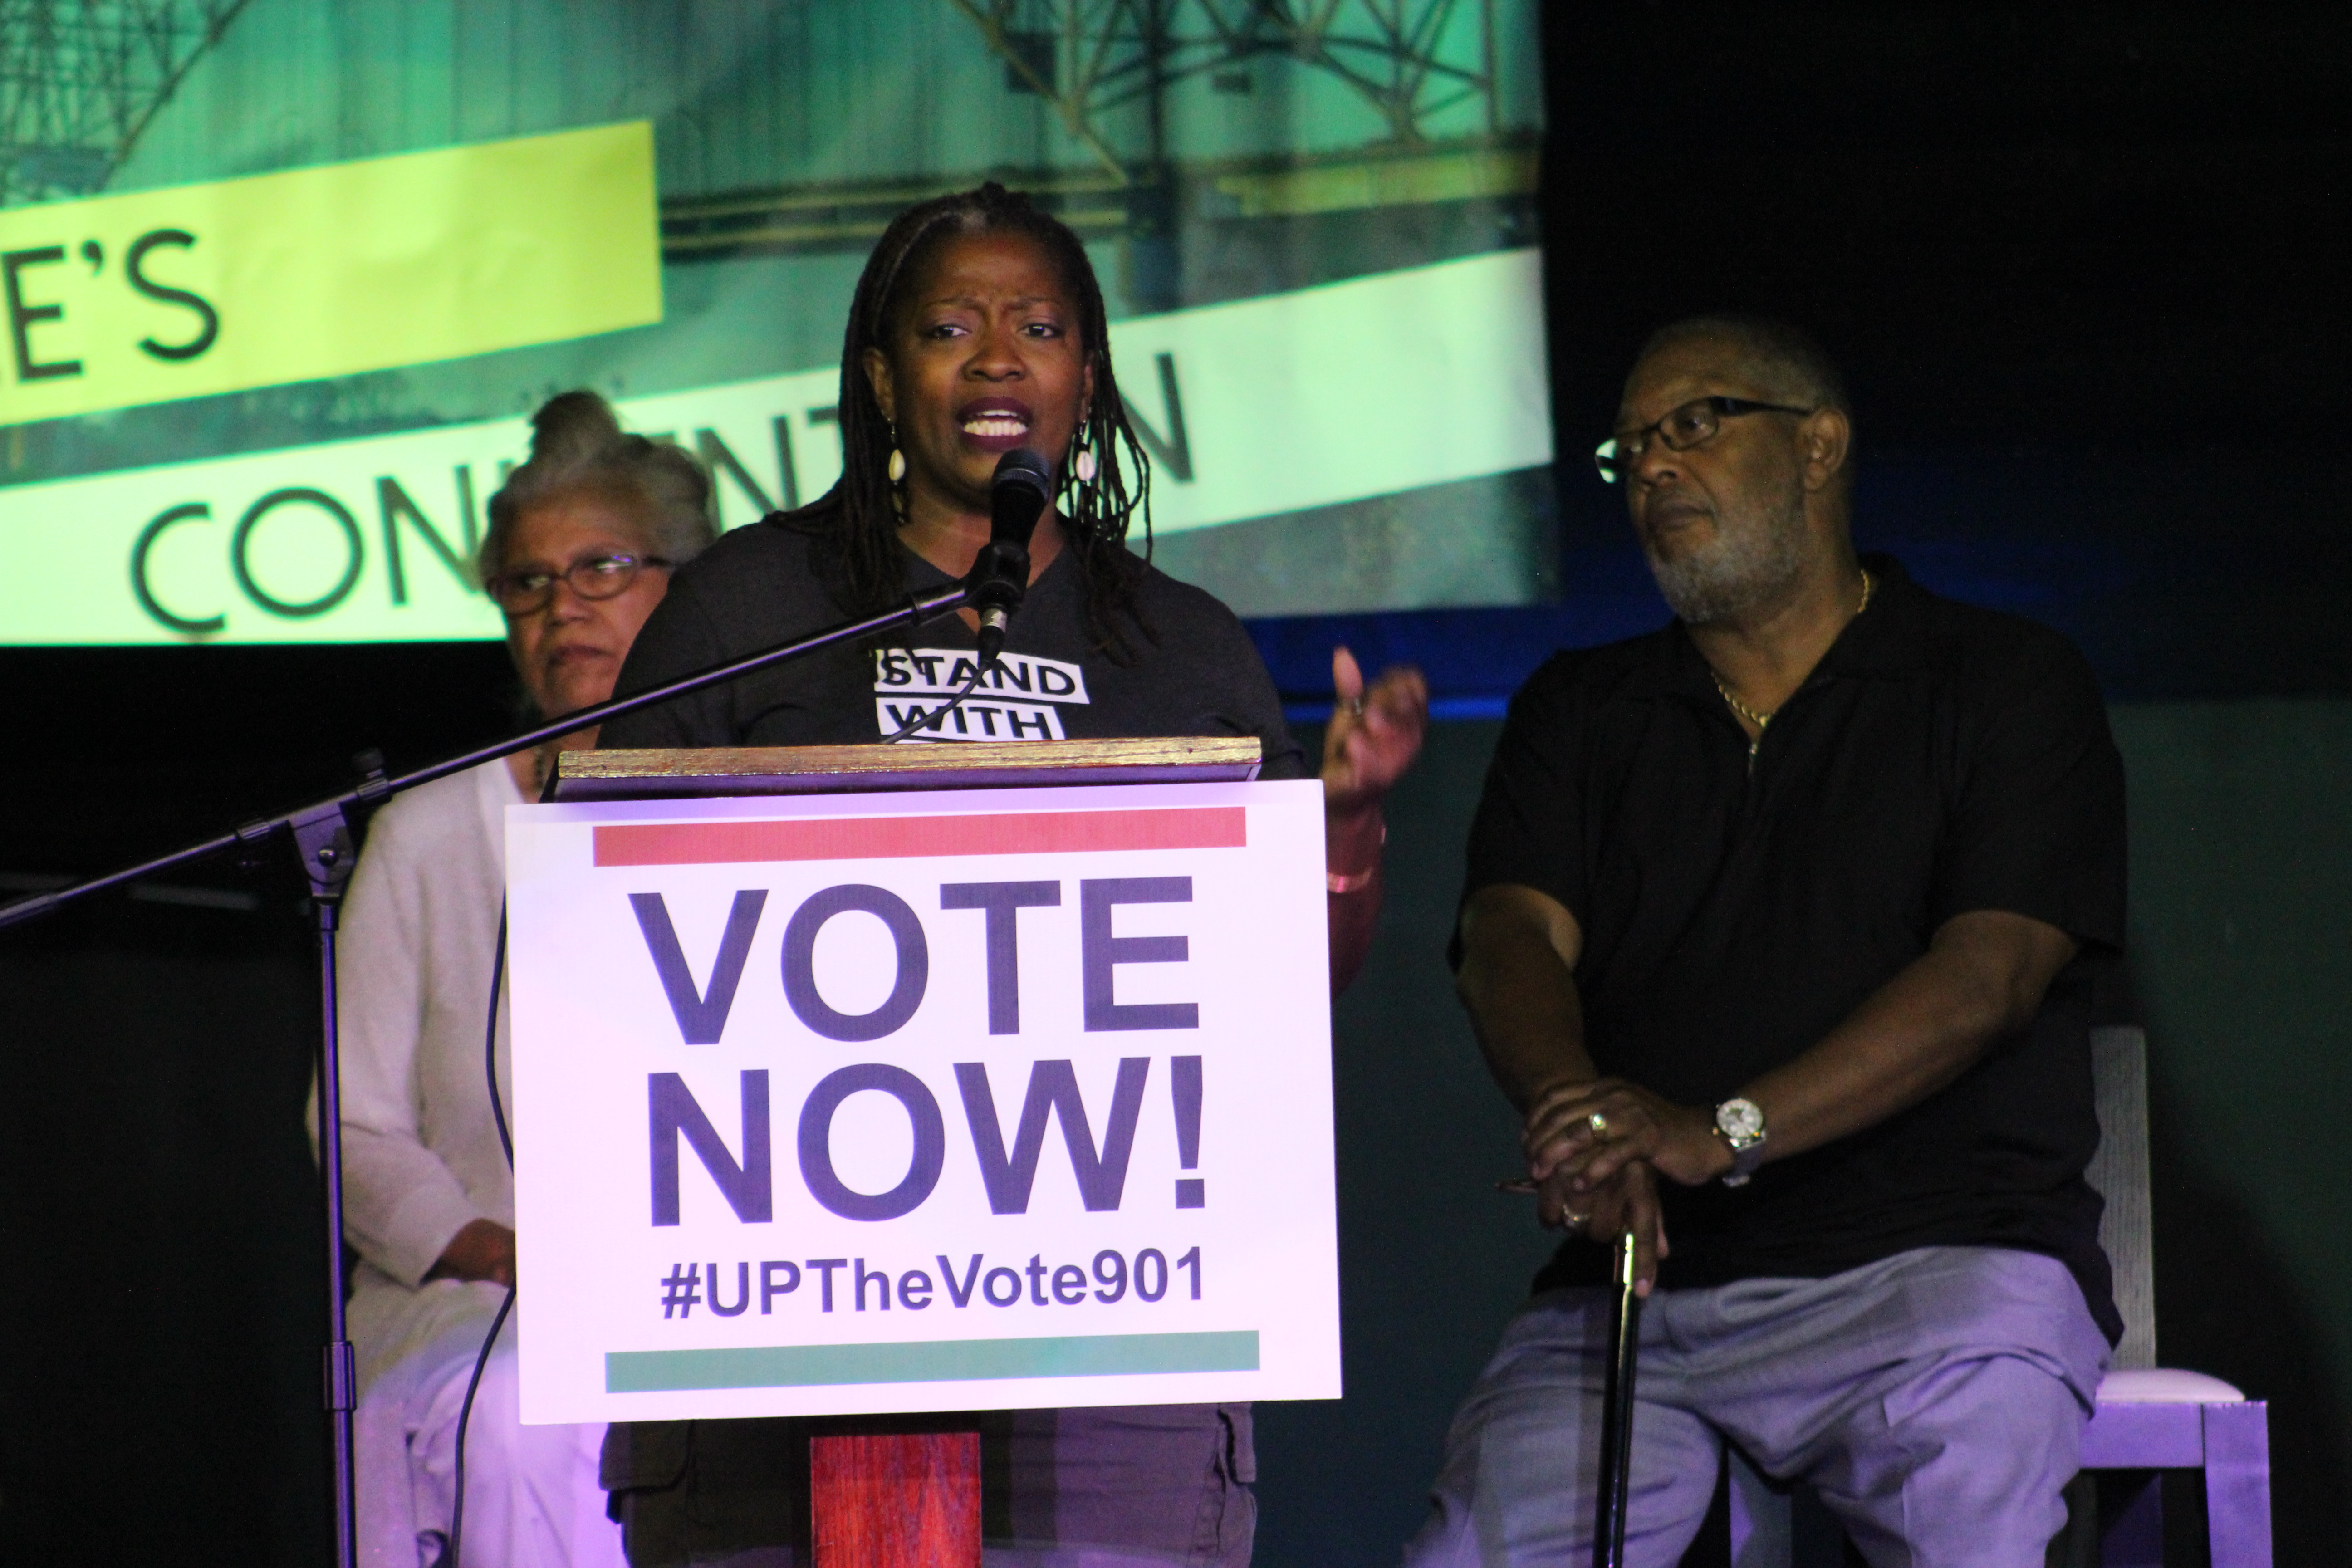 Cherisse Scott, founder and CEO of SisterReach, opened with fiery remarks, calling for women's health policies that will benefit women of color. (Photo: Lee Eric Smith)